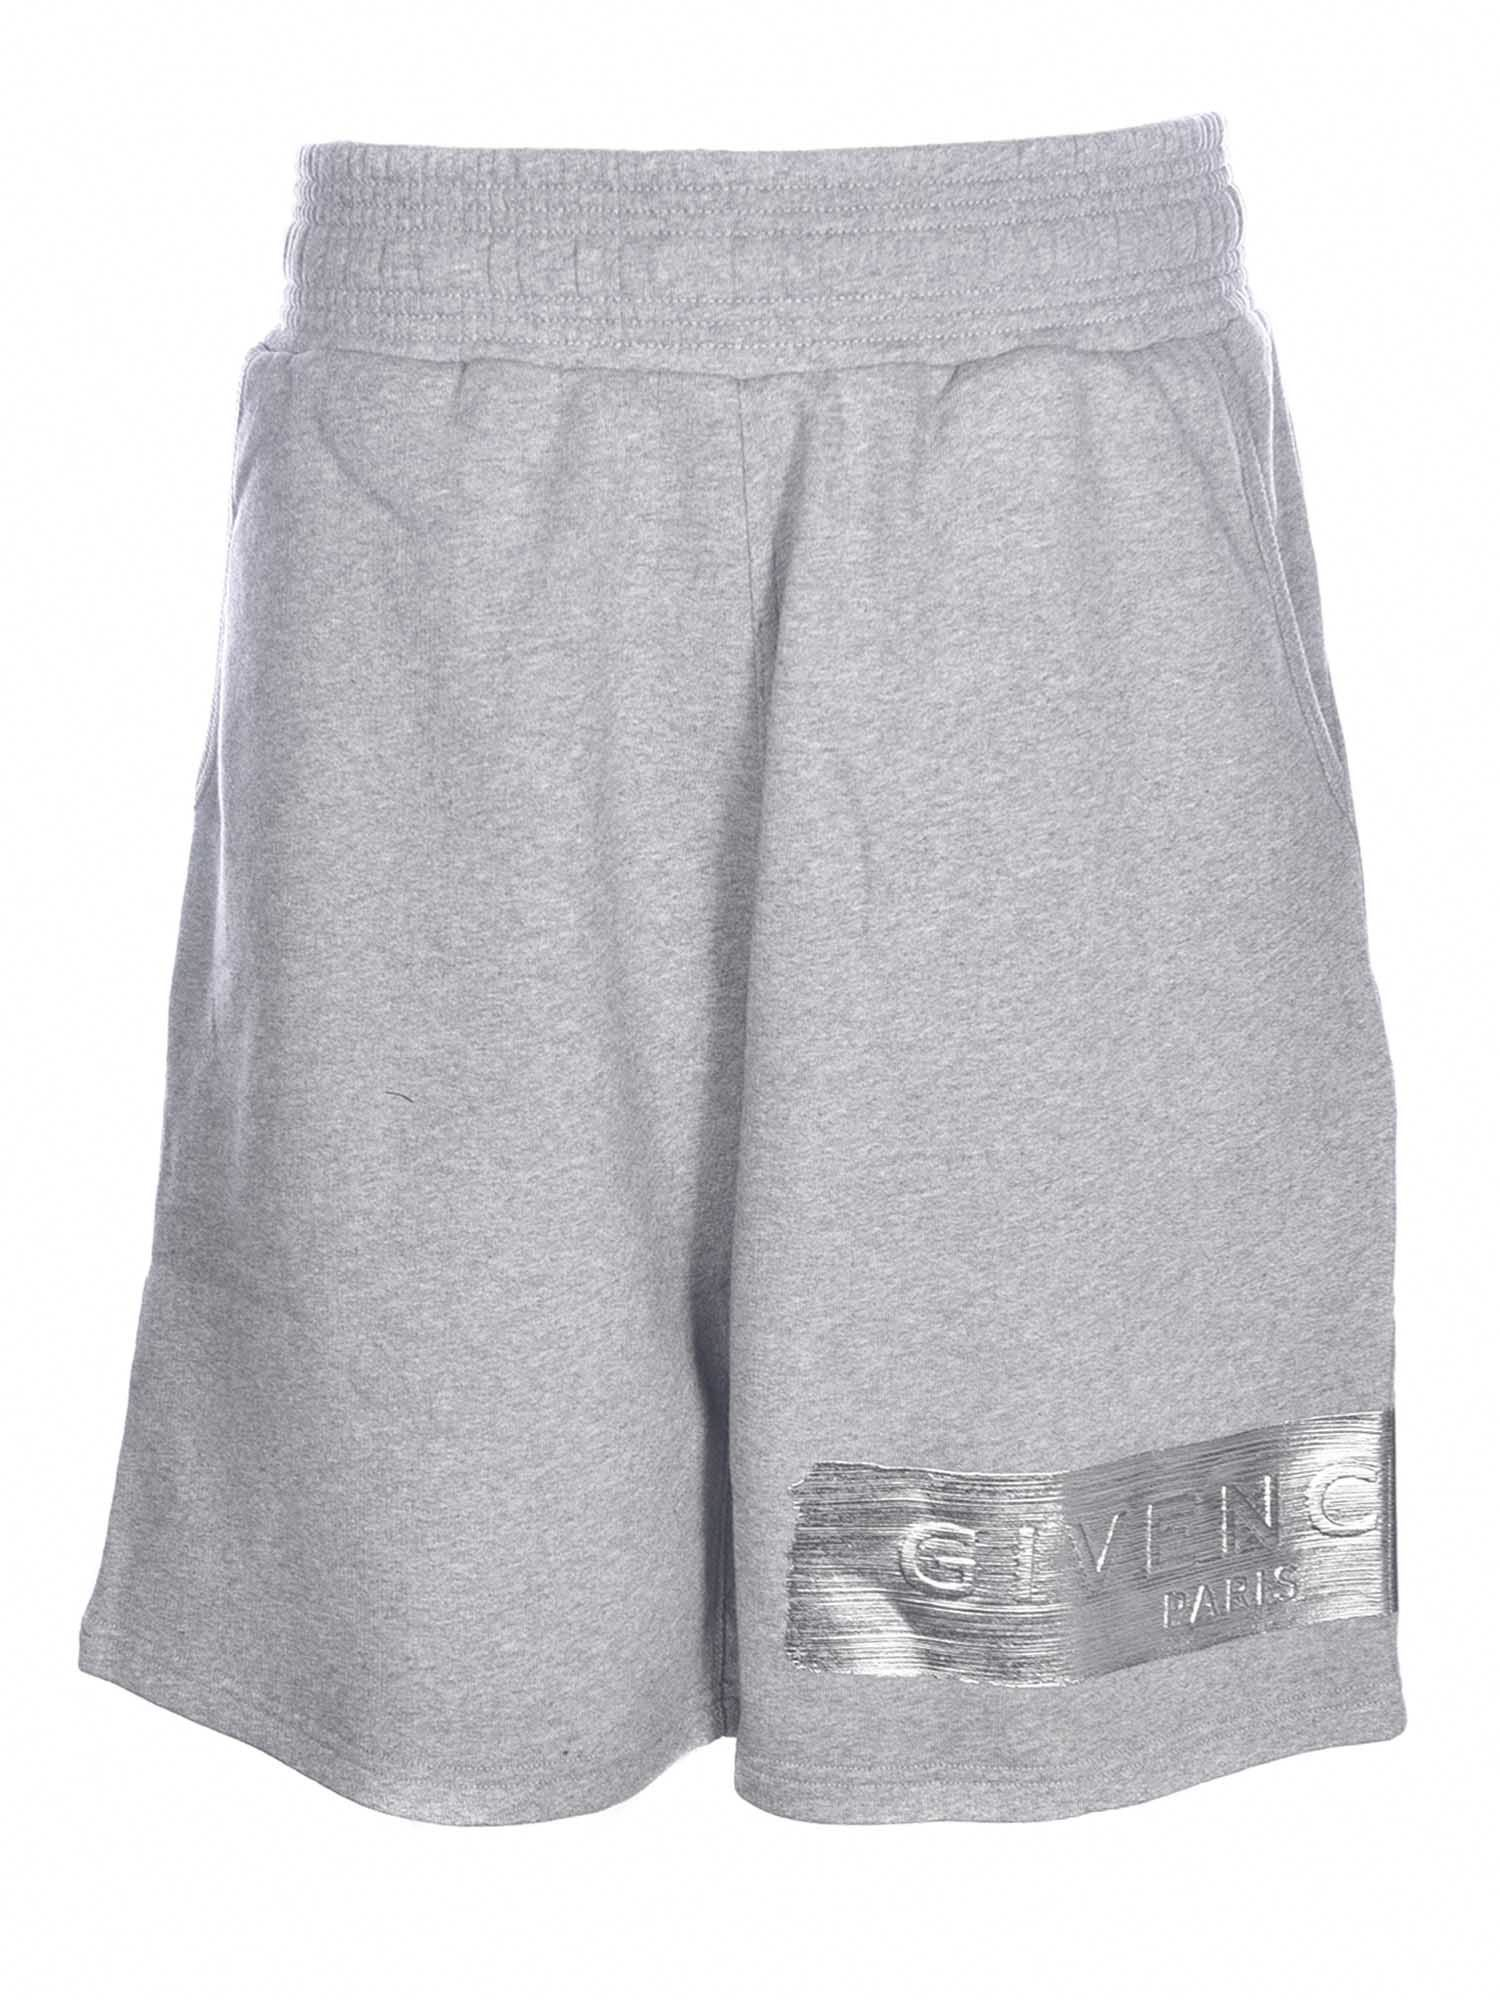 Givenchy LAMINATED LOGO PRINTED SHORTS IN MELANGE GREY